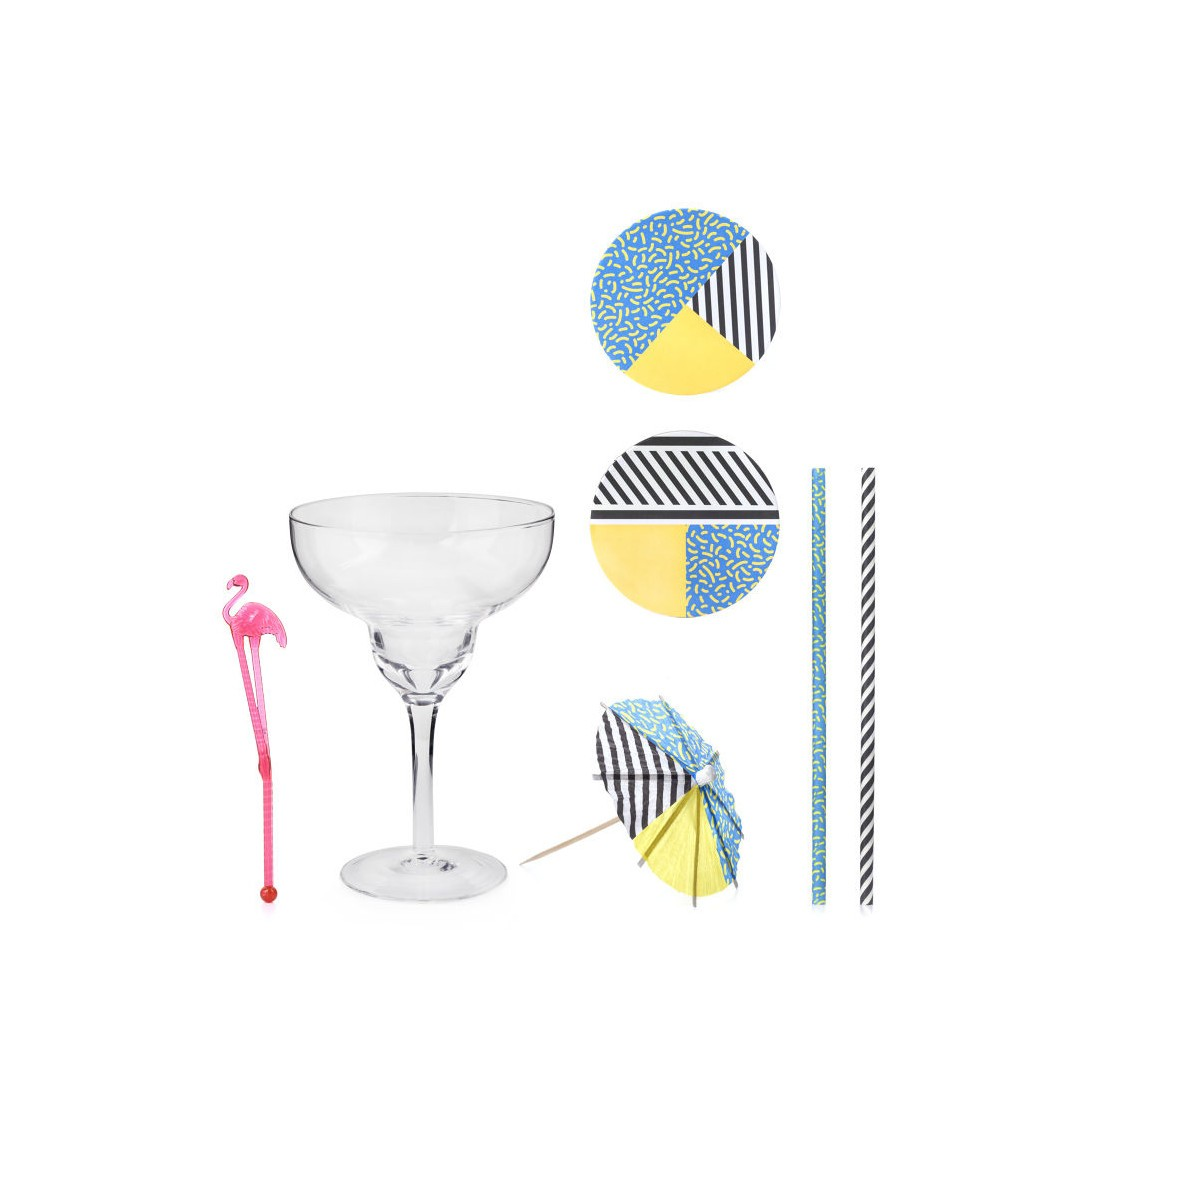 MEMPHIS DRINK SETS